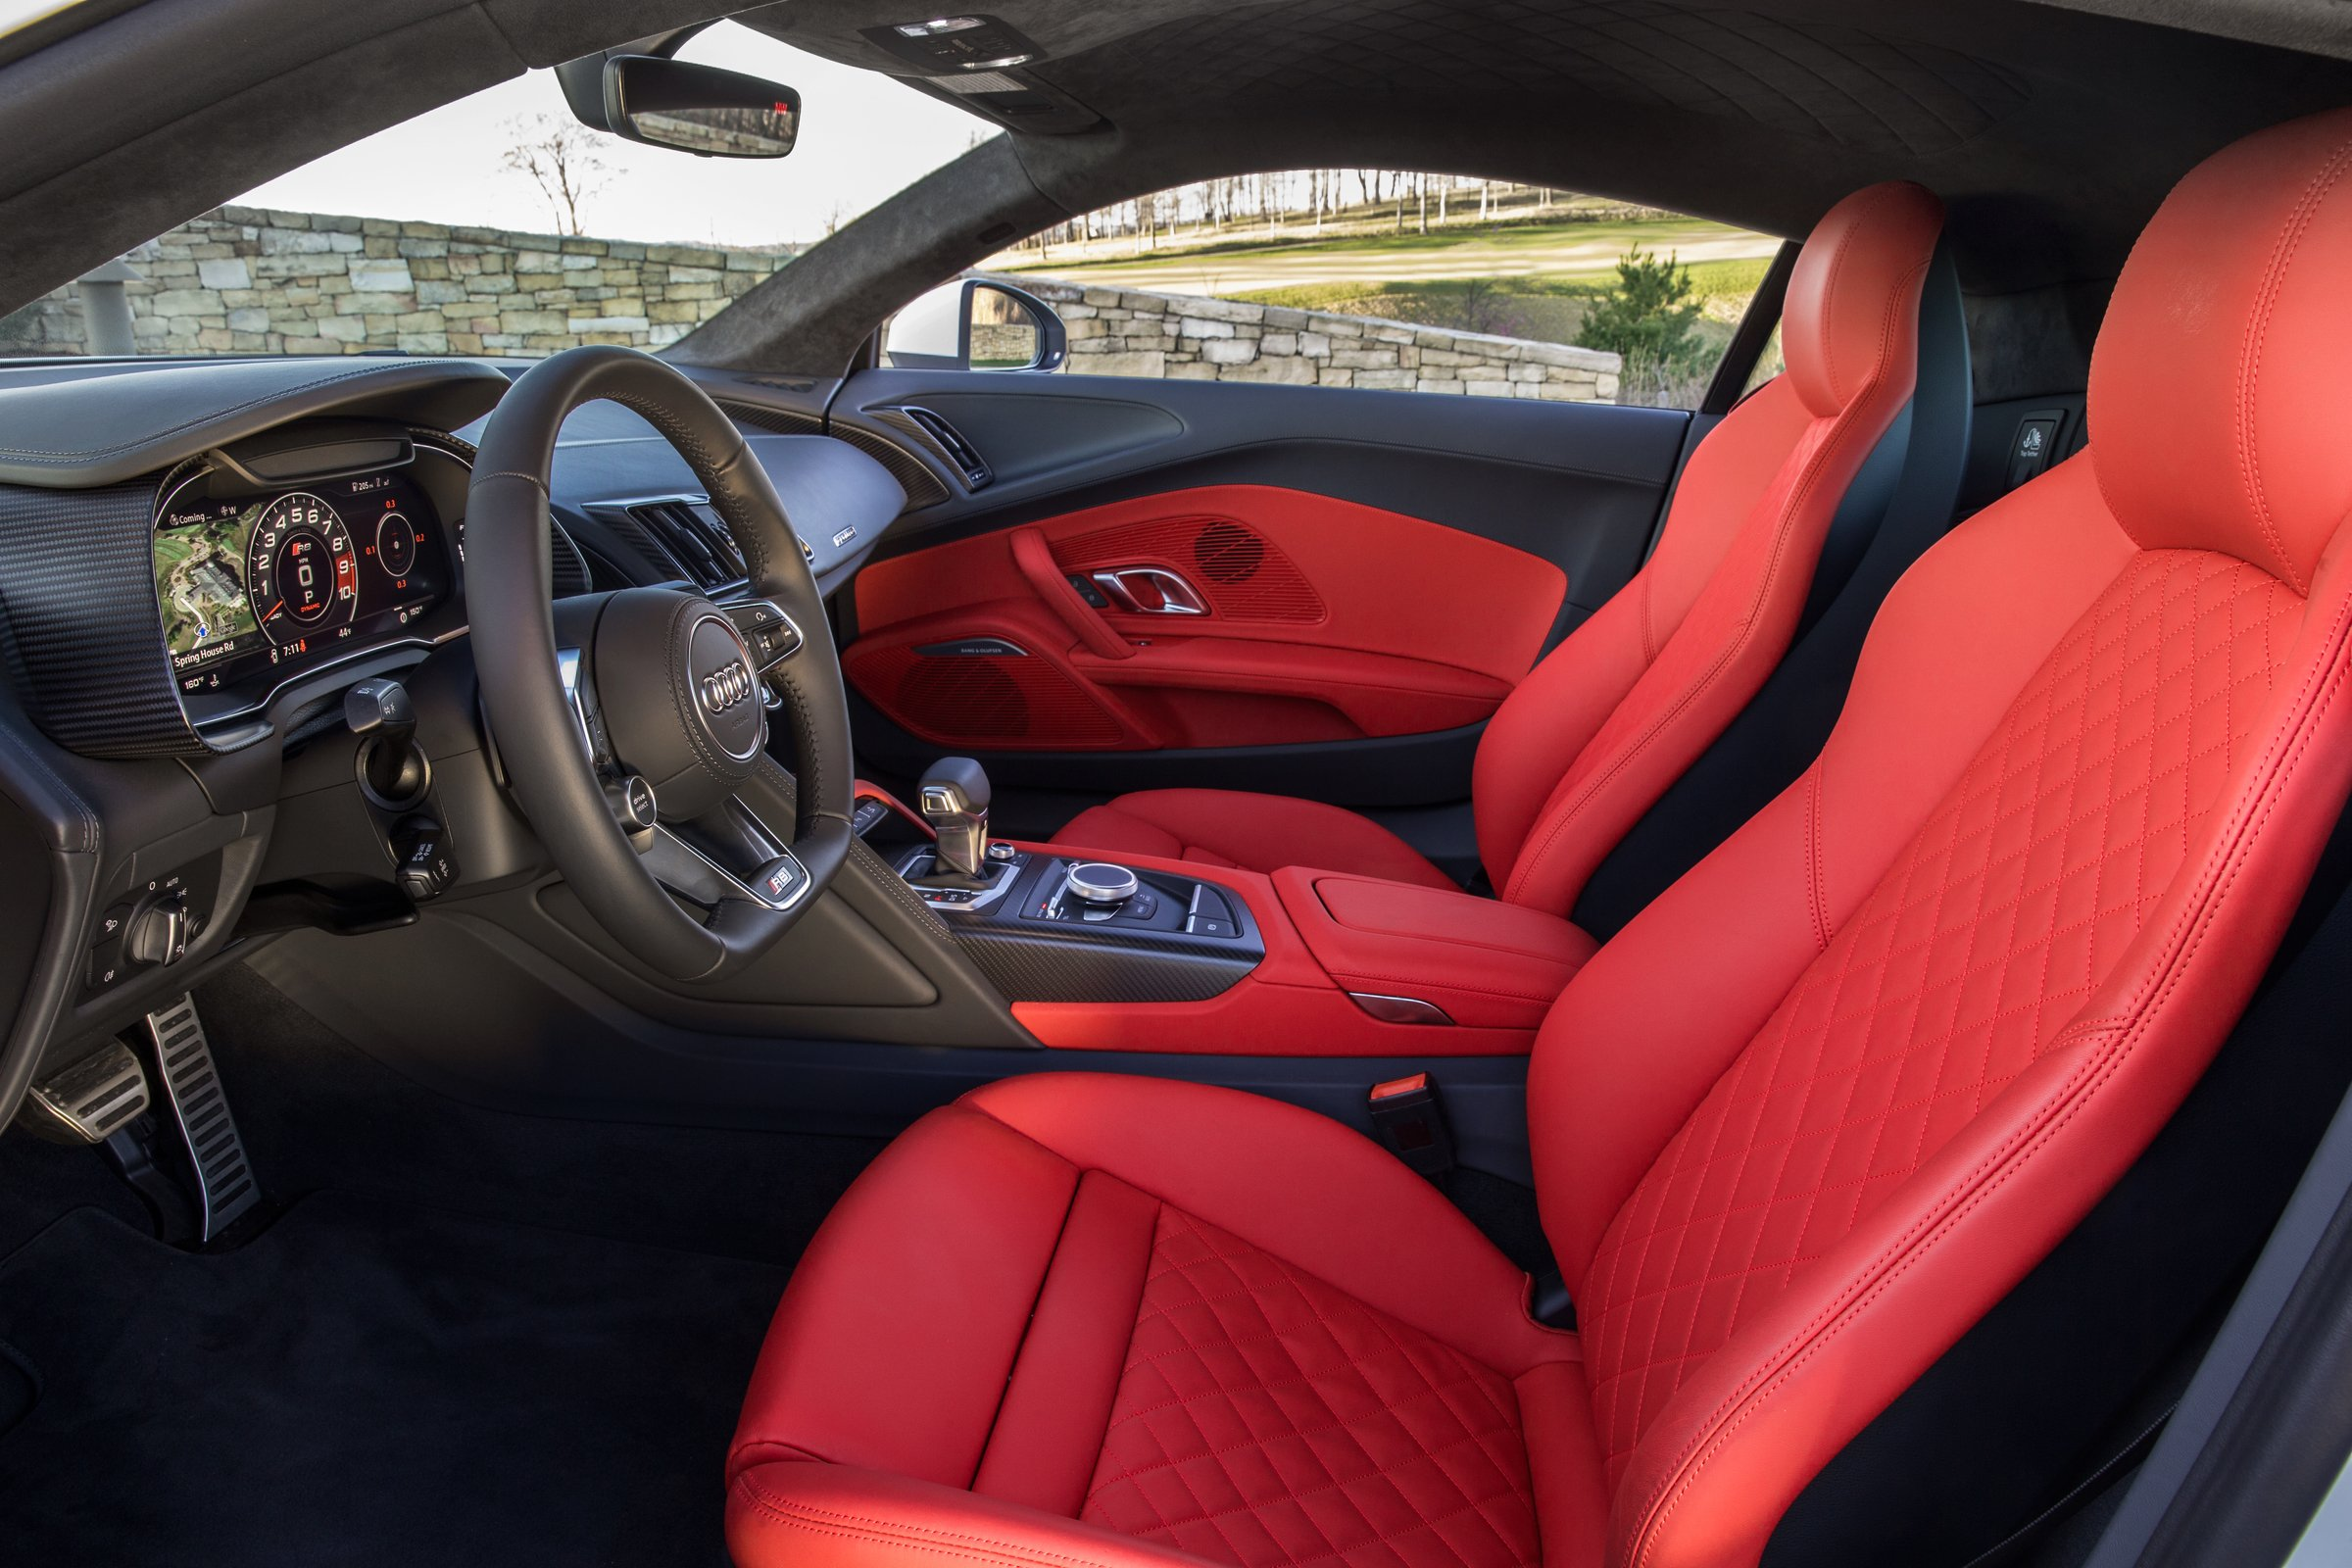 https://myautoworld.com/wp-content/uploads/2016/05/news-2017-audi-r8-v10-interior-31.jpg